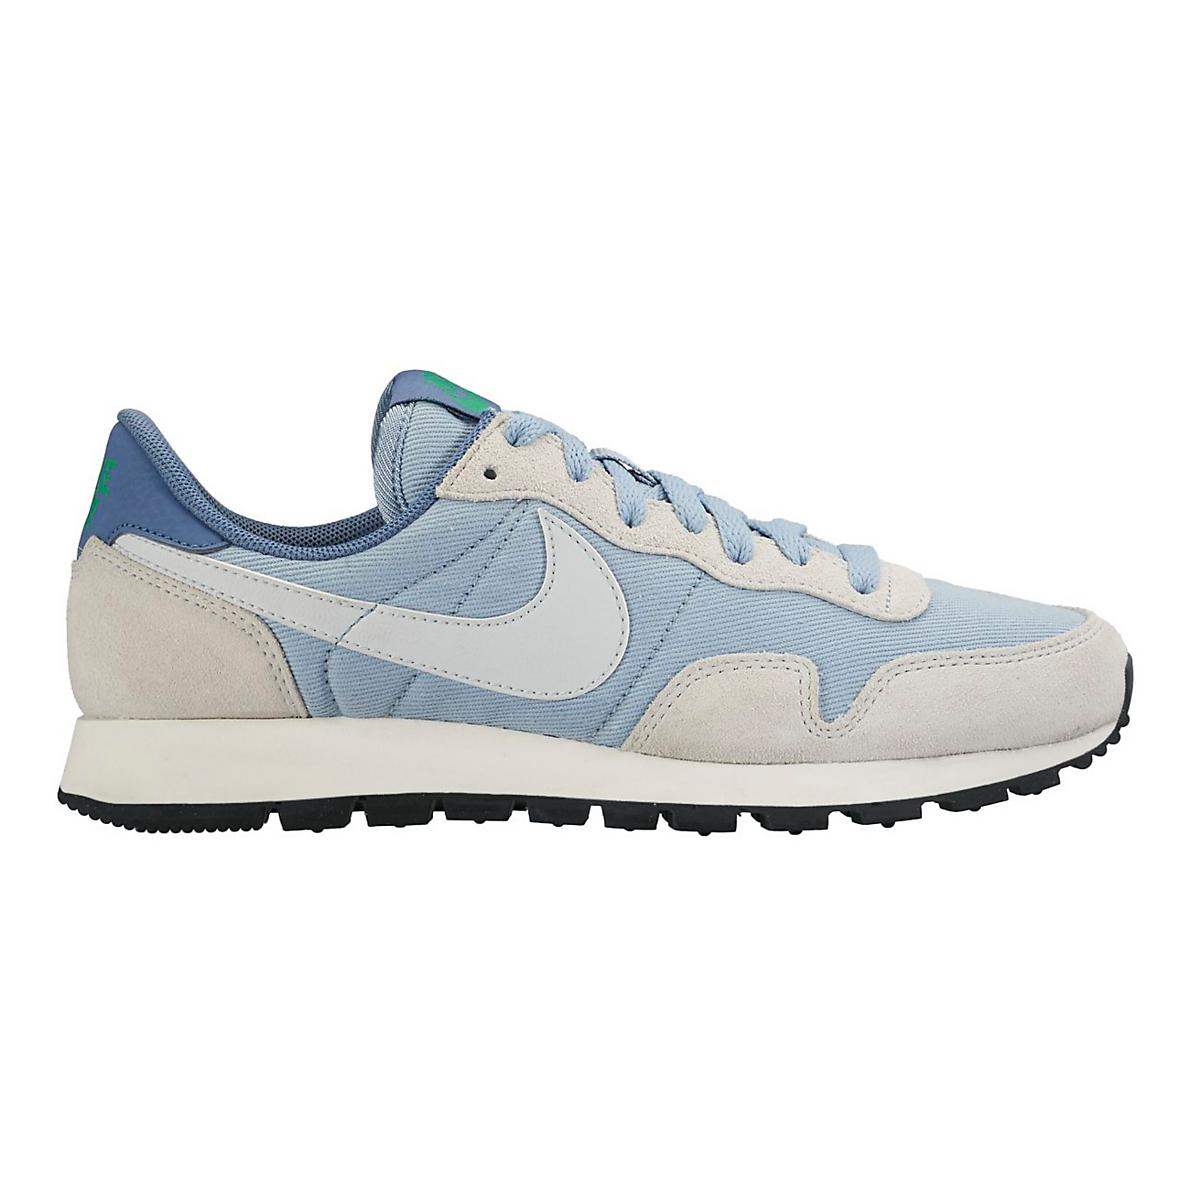 Womens Nike Air Pegasus  83 Casual Shoe at Road Runner Sports 72457b64d